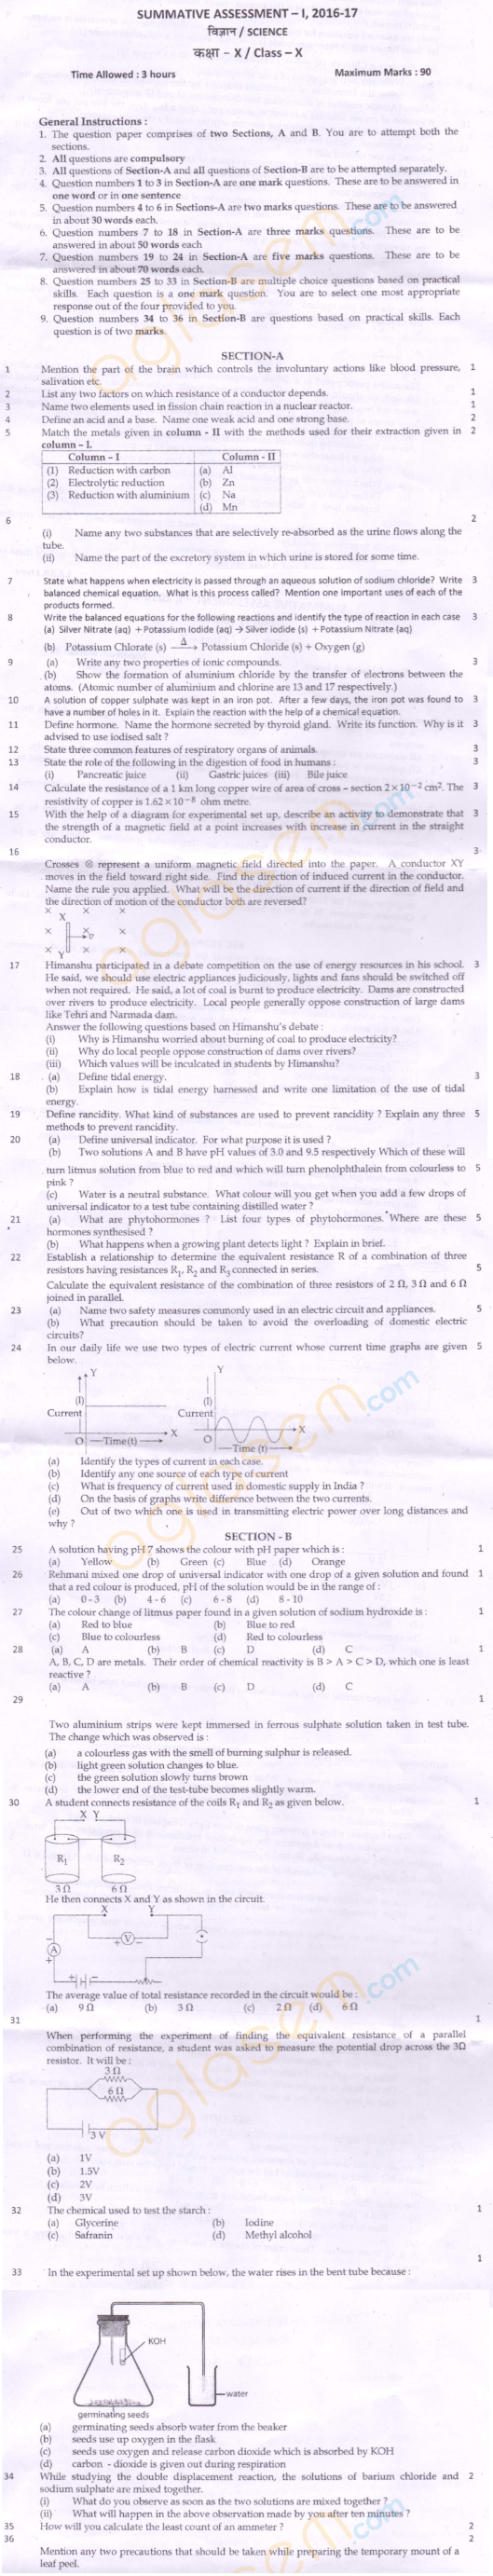 Cbse class 10 sample papers sa1 solved english 2015-16 set 1.